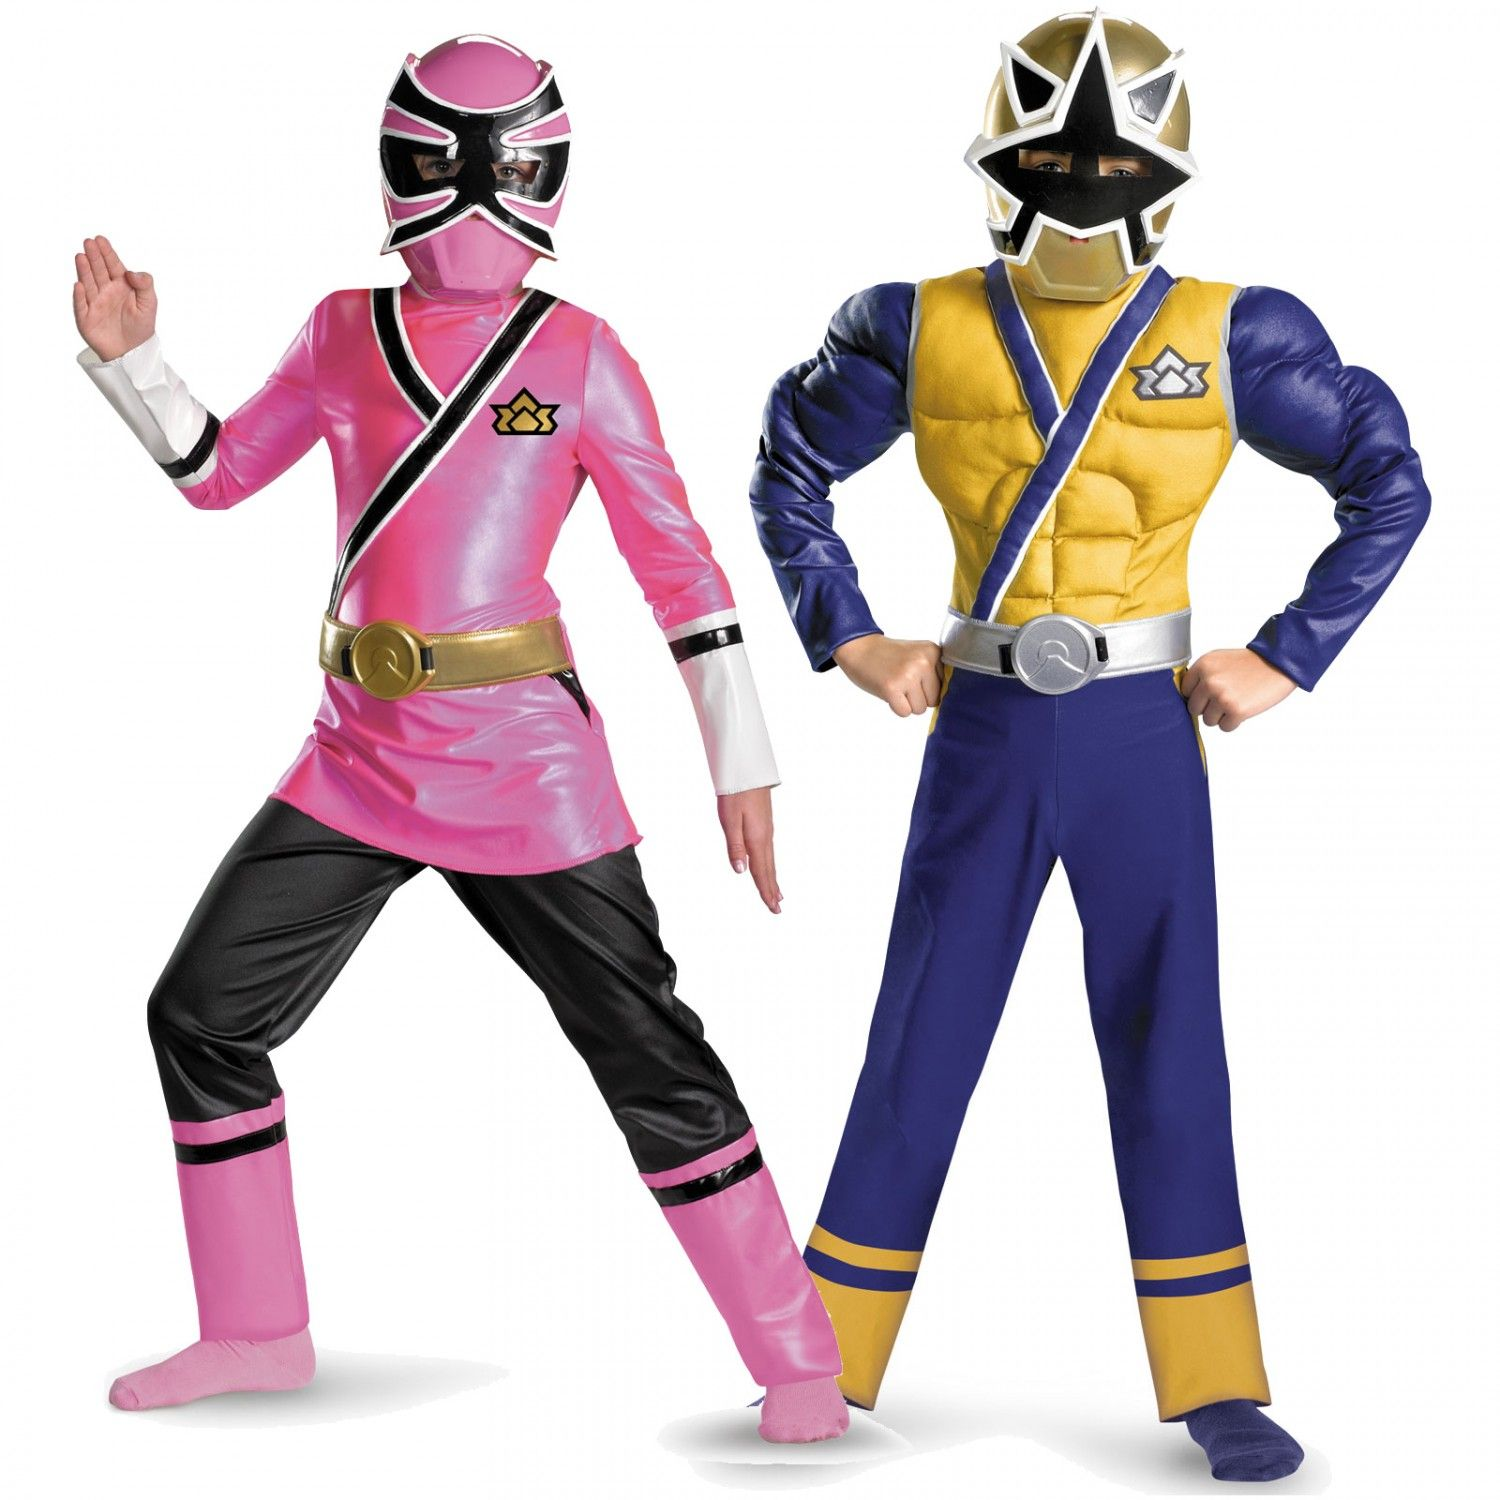 Power Rangers Costumes Old and Pink | Power Rangers Birthday Party ...